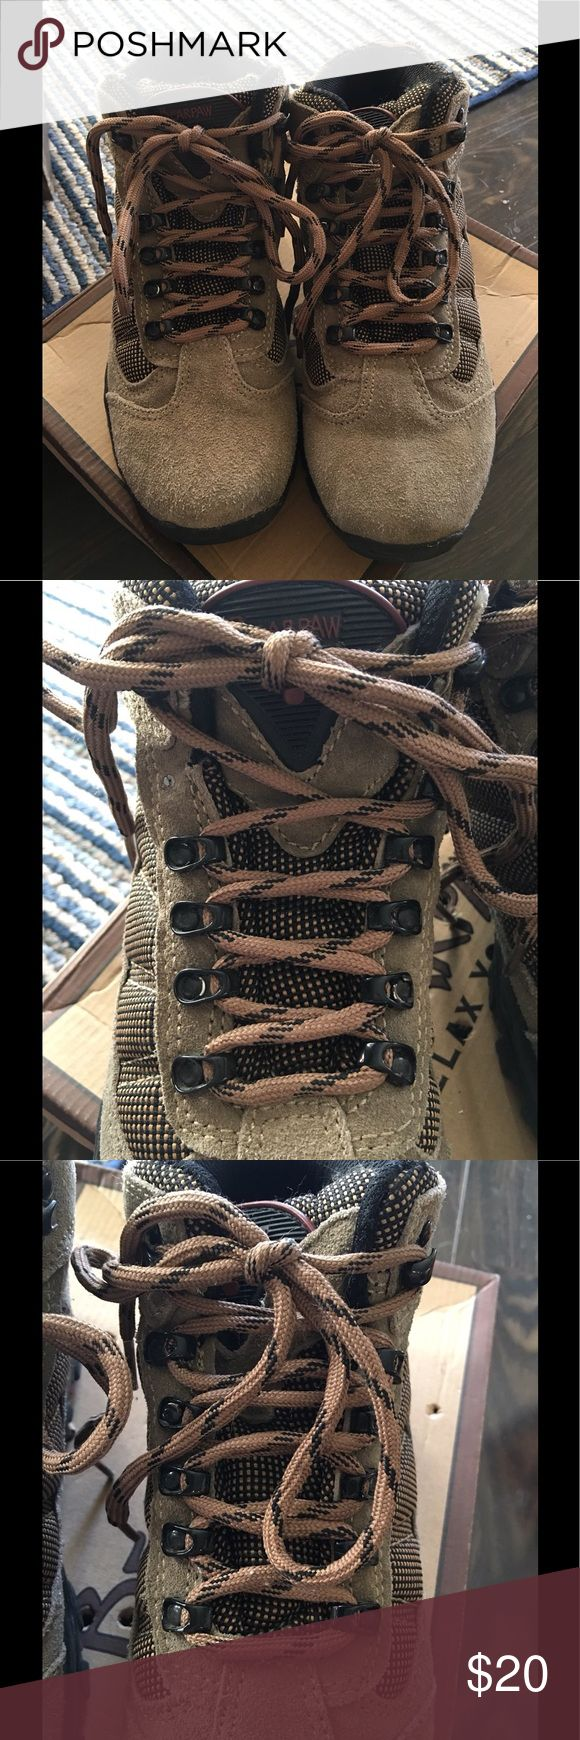 ❤️Boys Leather Hiking Boots worn 1x Light Brown Sueded Leather BearPaws LIKE NEW, Boys Hiking Boots, worn 1x!  Purchased at Big 5 sporting goods, with minor defect-metal lace up piece missing on right shoe (top where laces tie) not noticeable at all. BearPaw Shoes Boots